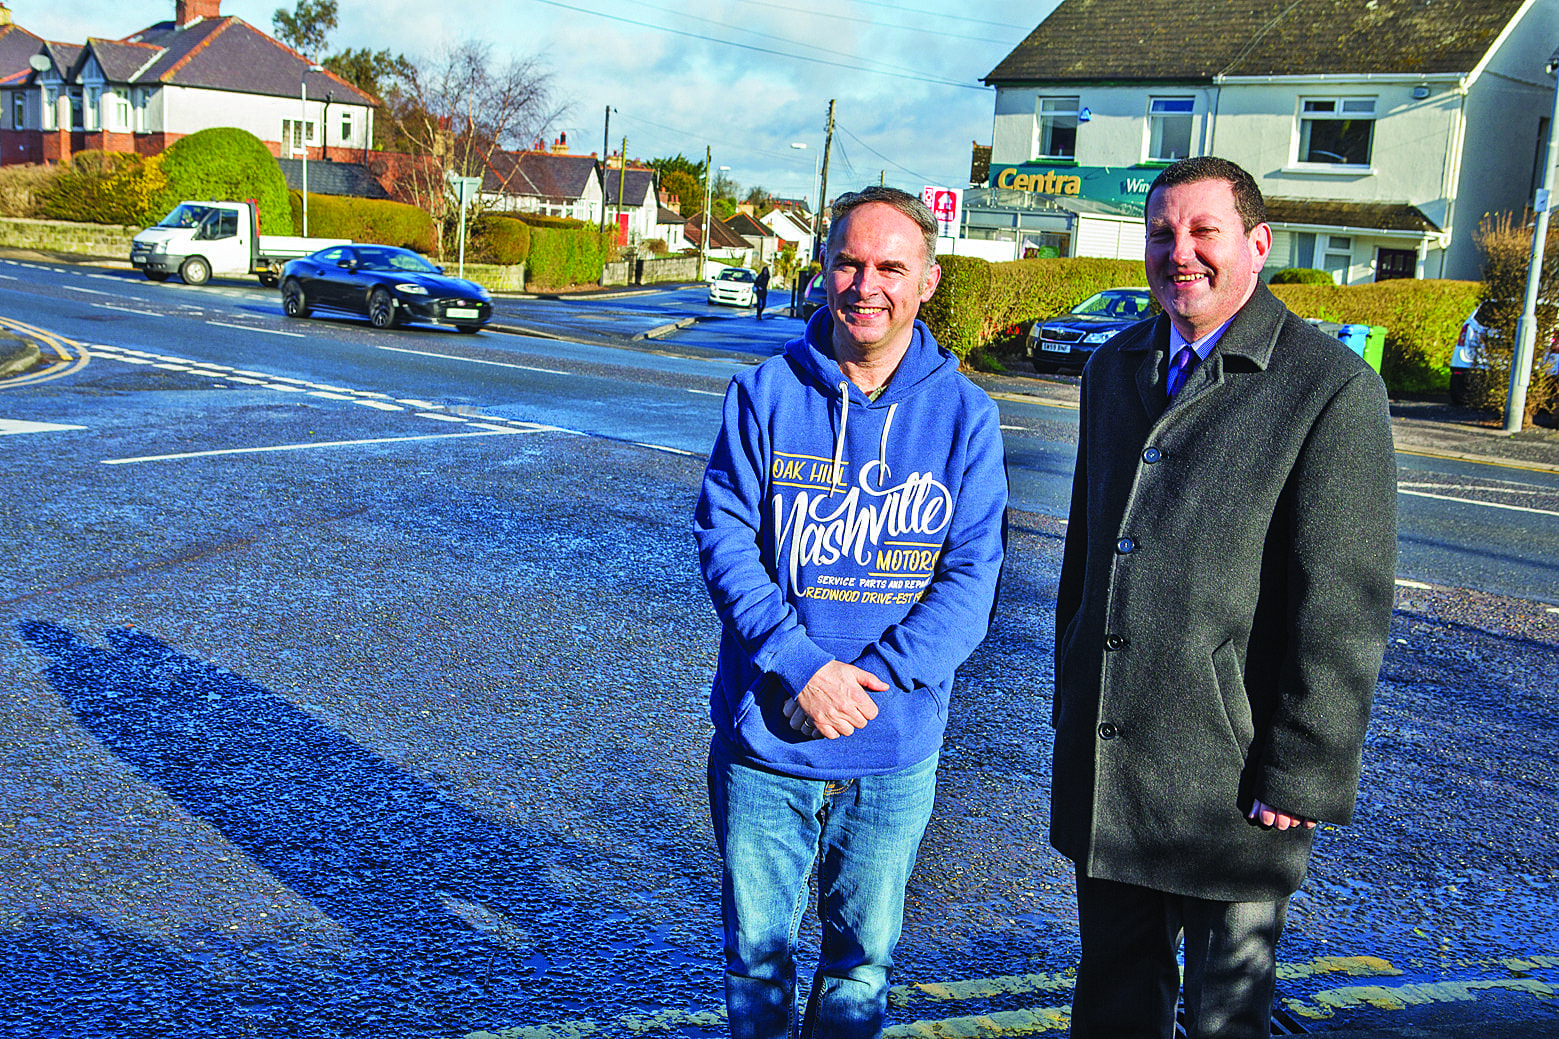 Residents win fight for pedestrian crossing